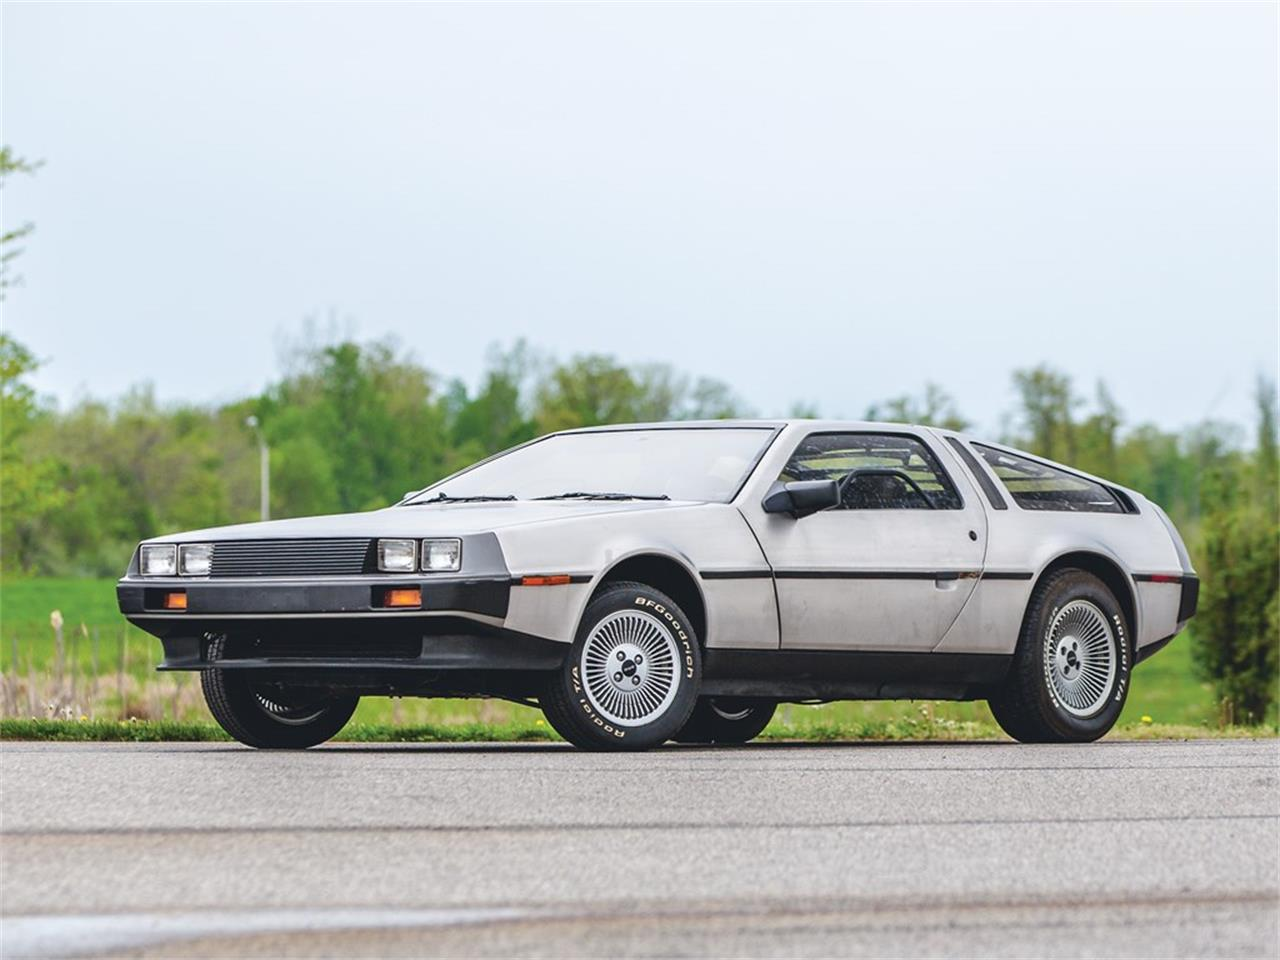 Large Picture of 1981 DMC-12 Auction Vehicle Offered by RM Sotheby's - Q55A